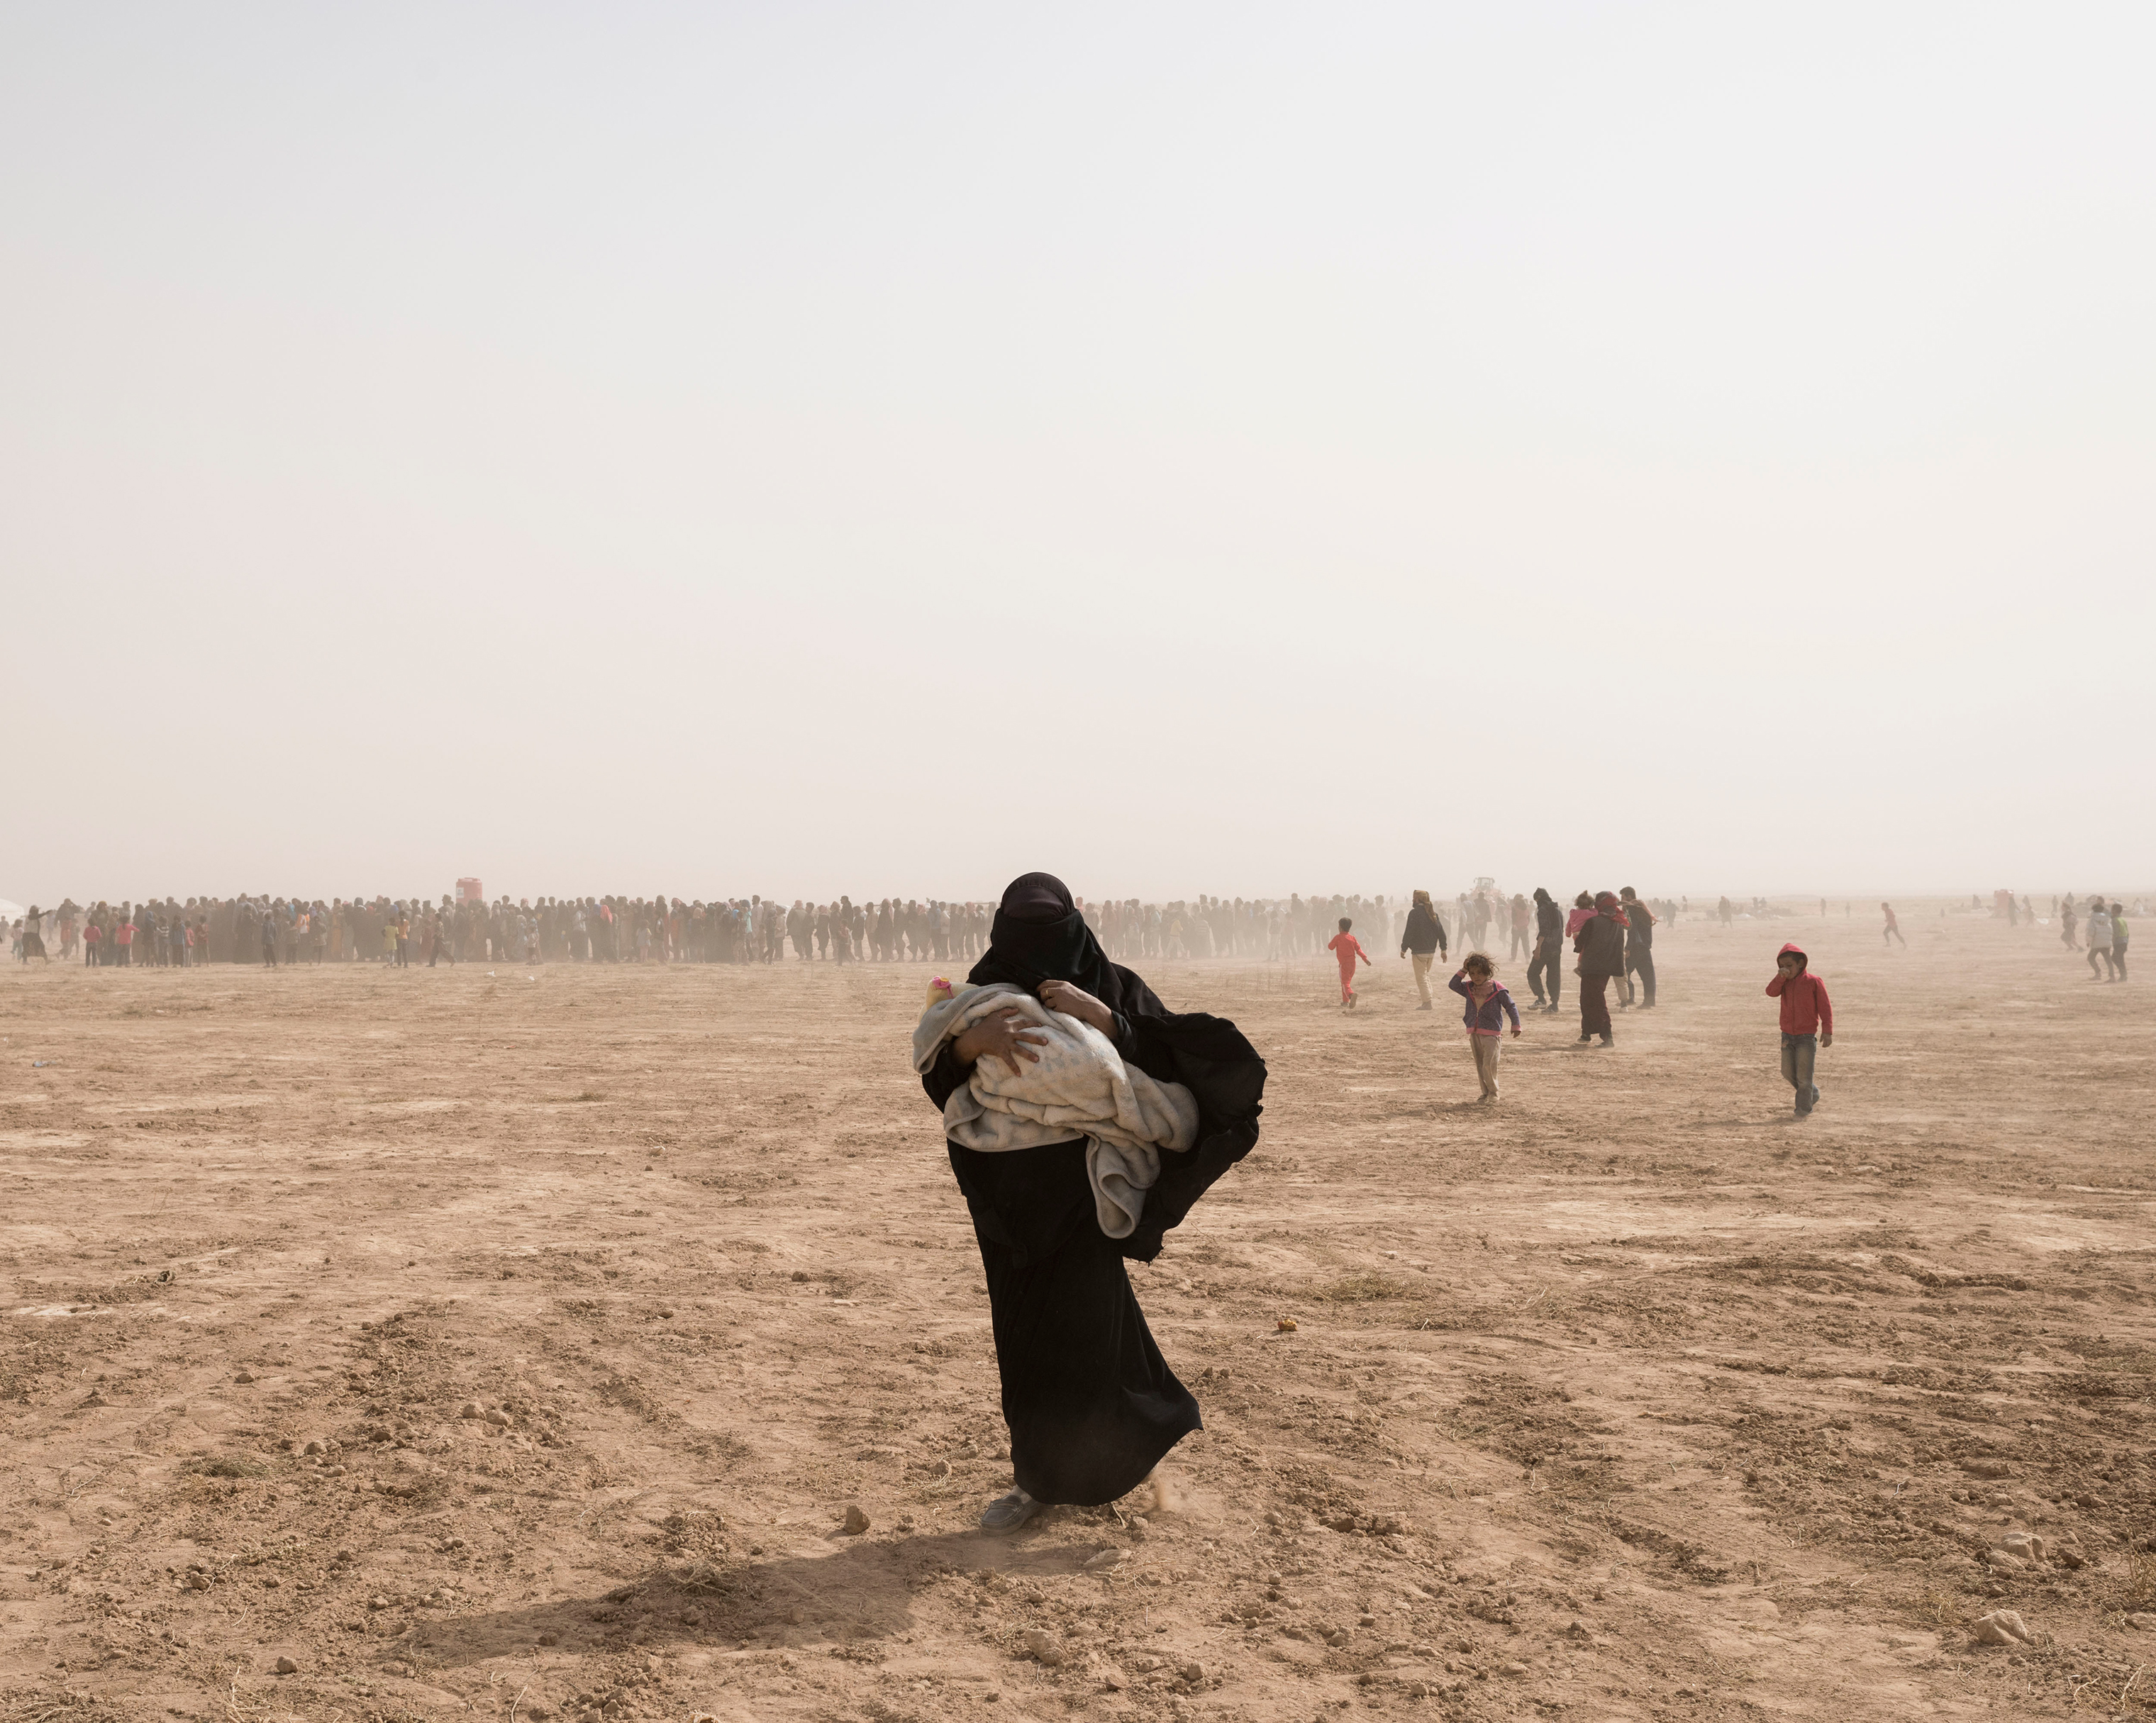 A woman carries her children away from a food-distribution site near Deir ez-Zor, Syria, during a sandstorm in October.